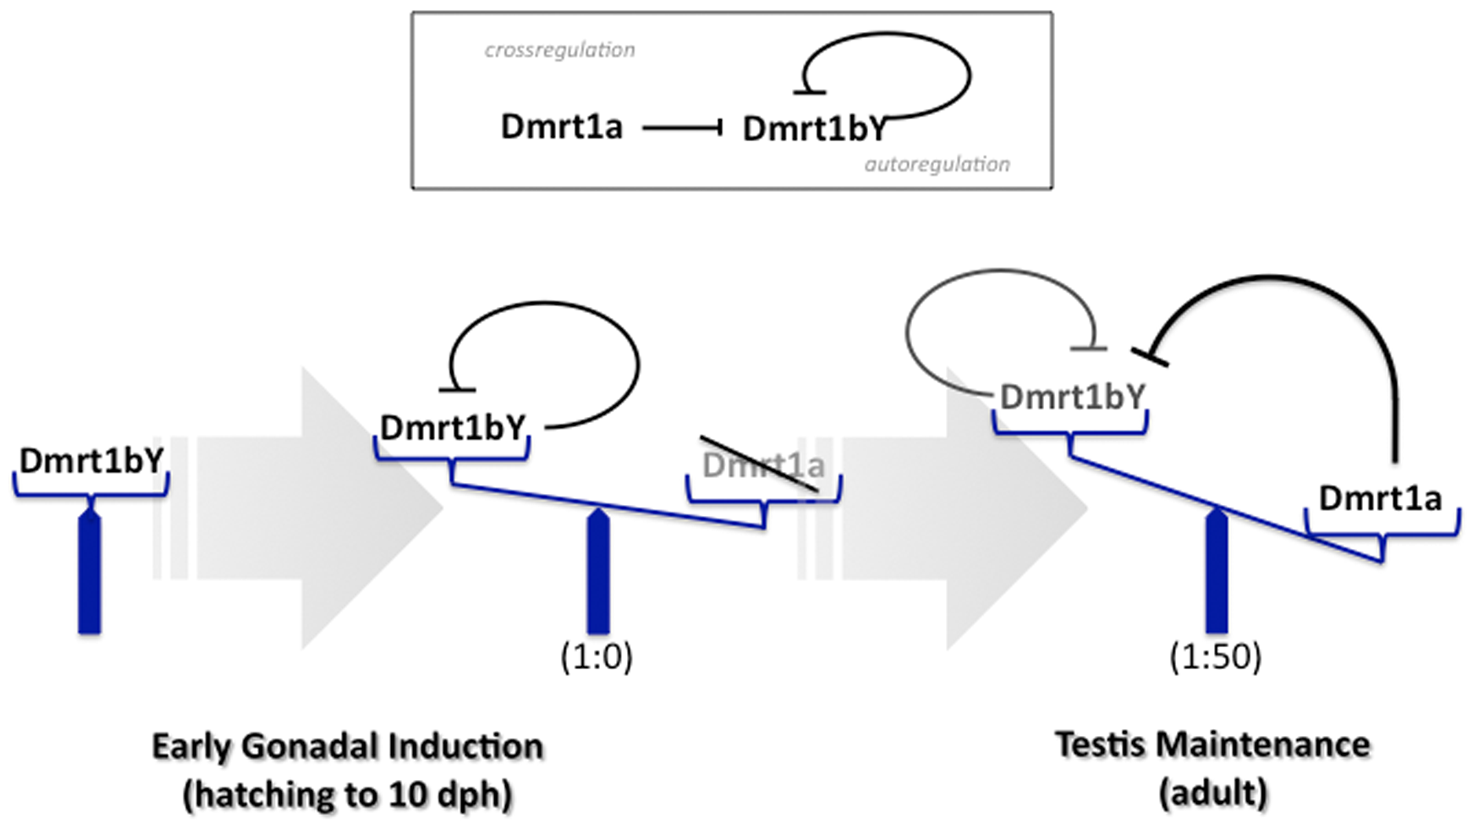 Model for feedback and cross-regulation of the medaka dmrt1 paralogs.